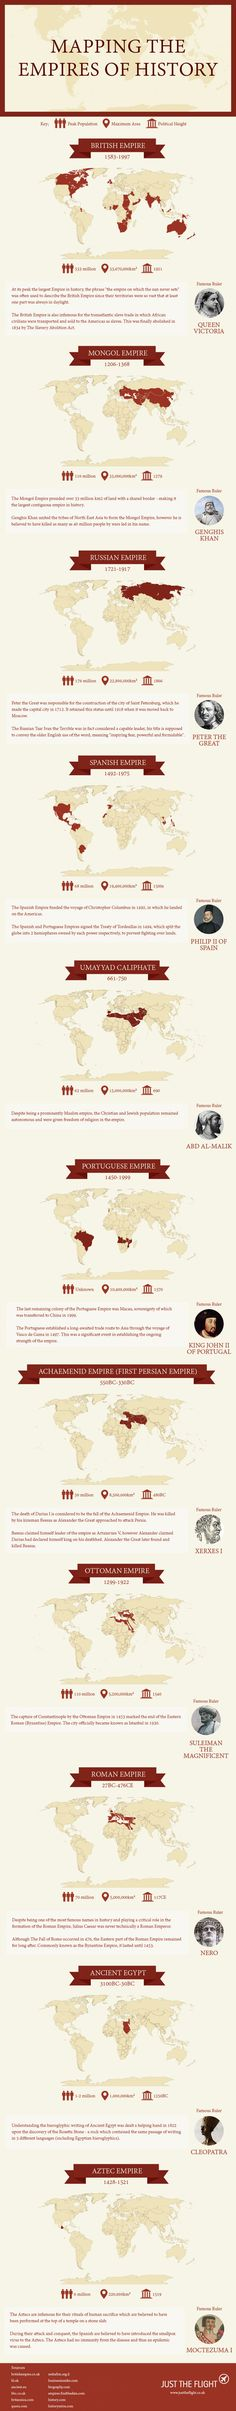 Mapping the Empires of History Infographic